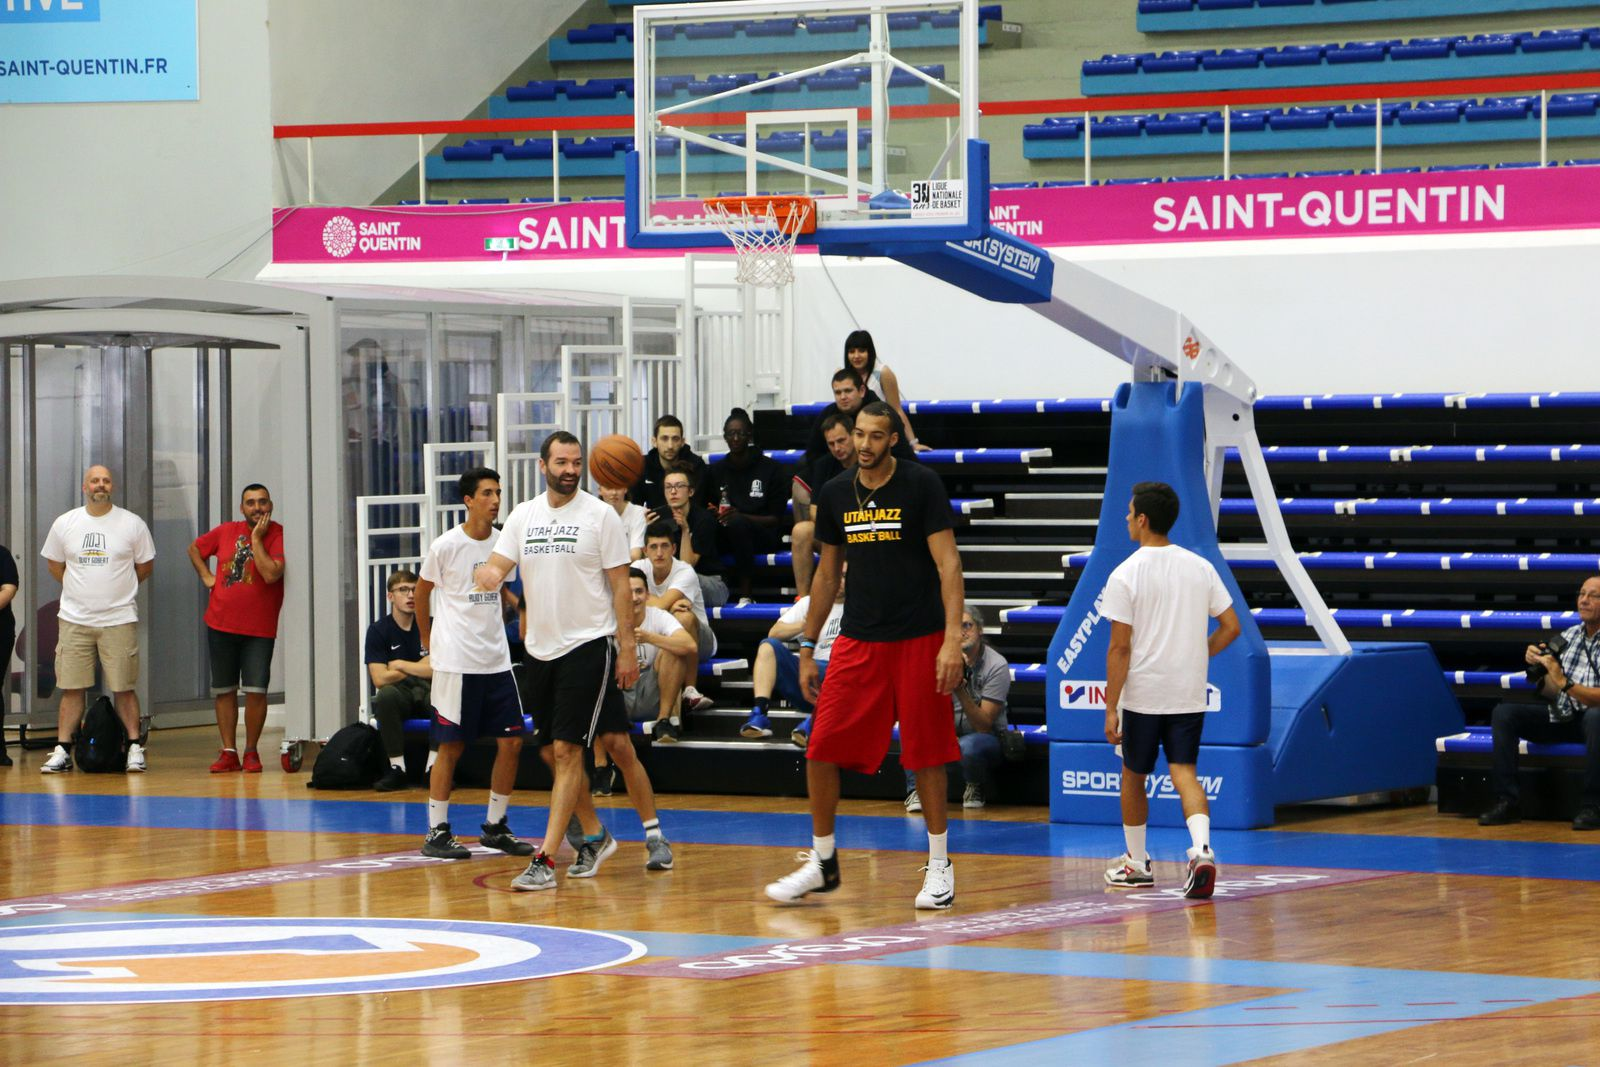 Star internationale de NBA, championnat américain de basket-ball, au Palais des Sports de Saint-Quentin.